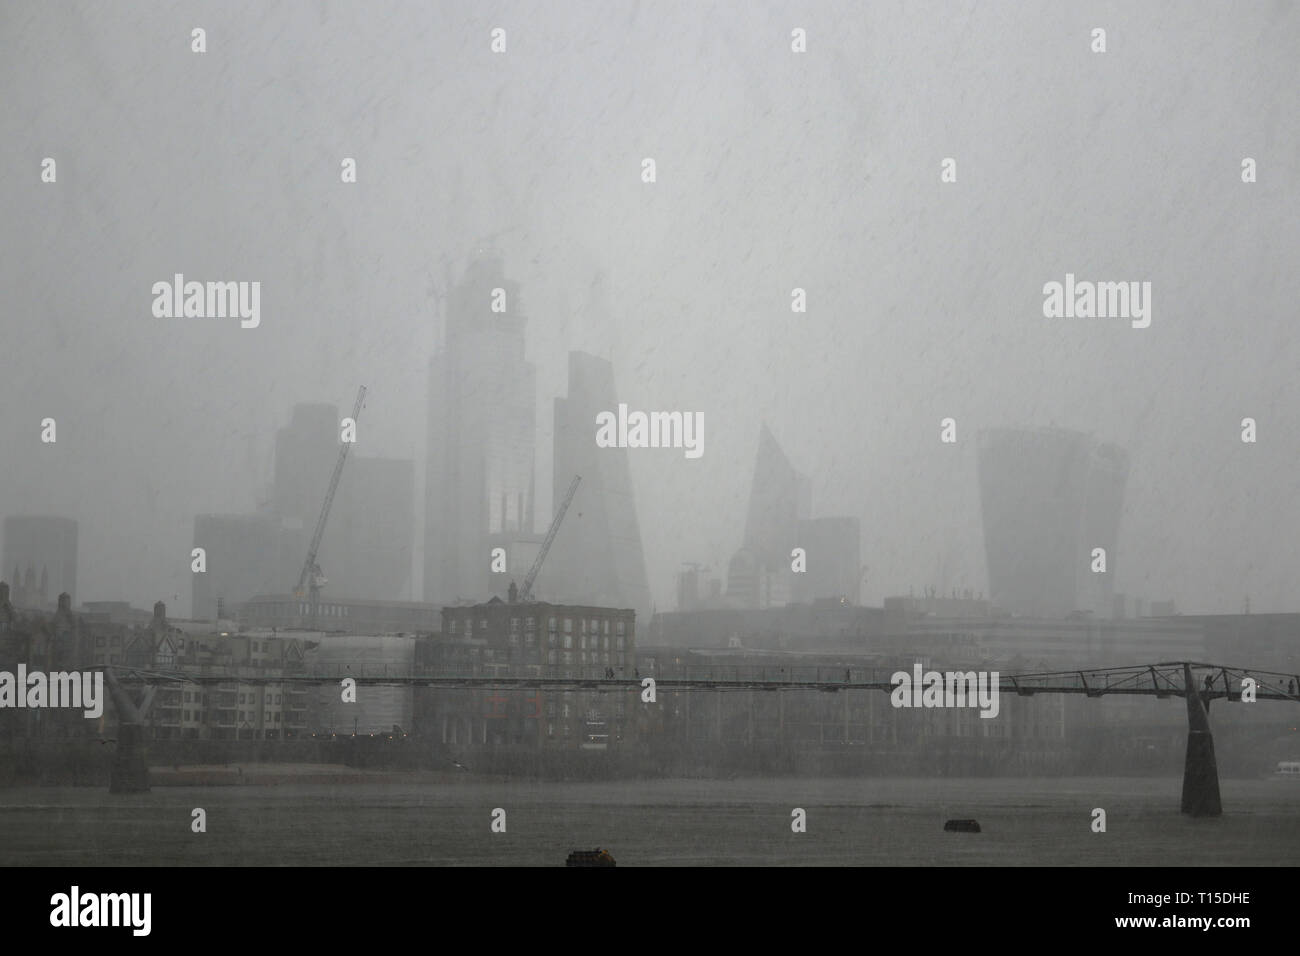 hailstone-storm-over-river-thames-millenium-bridge-city-of-london-england-uk-T15DHE.jpg